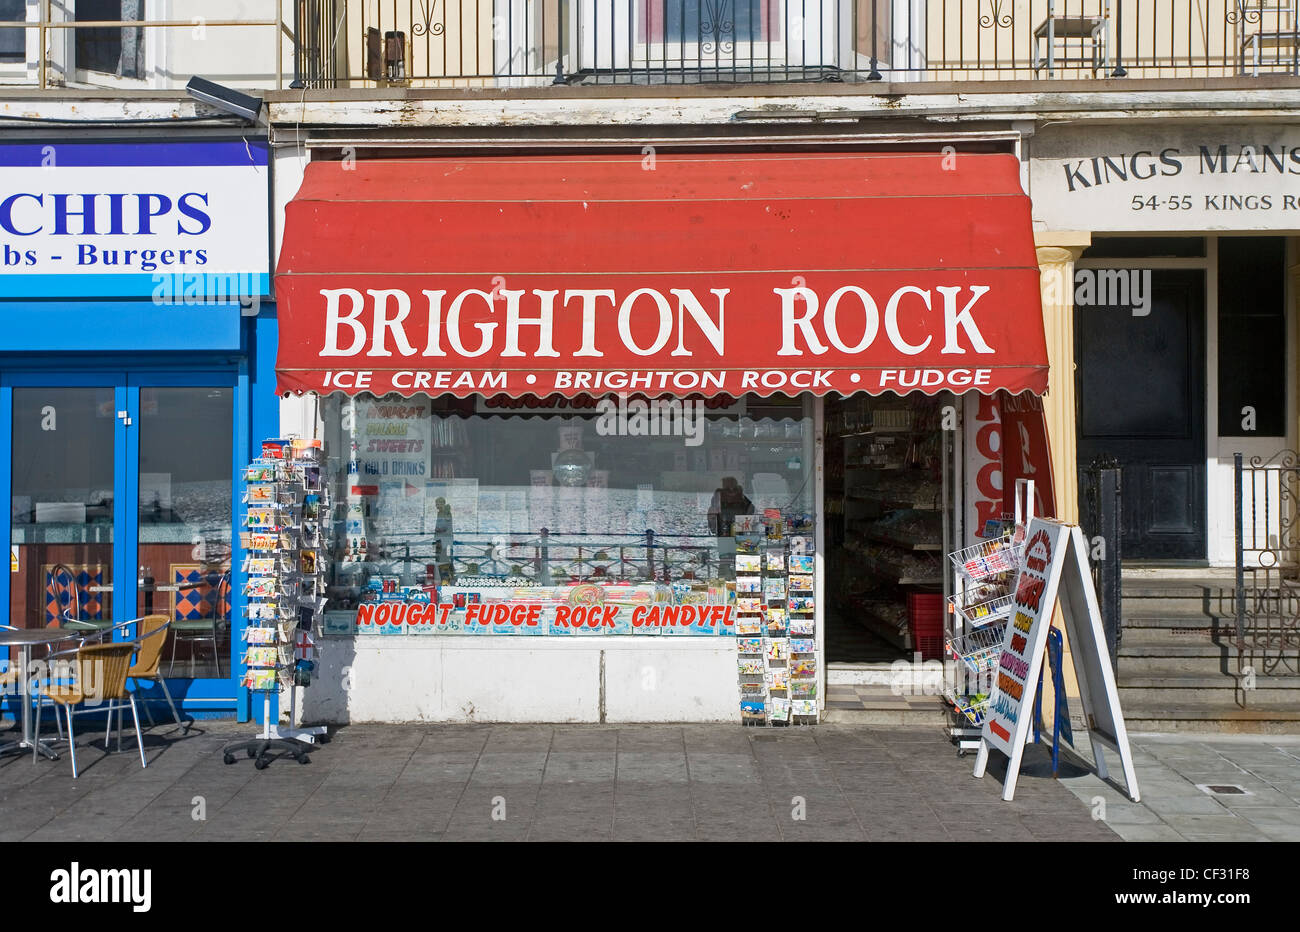 Brighton Rock shop selling postcards, ice cream, Brighton rock and fudge on the seafront in Brighton. - Stock Image